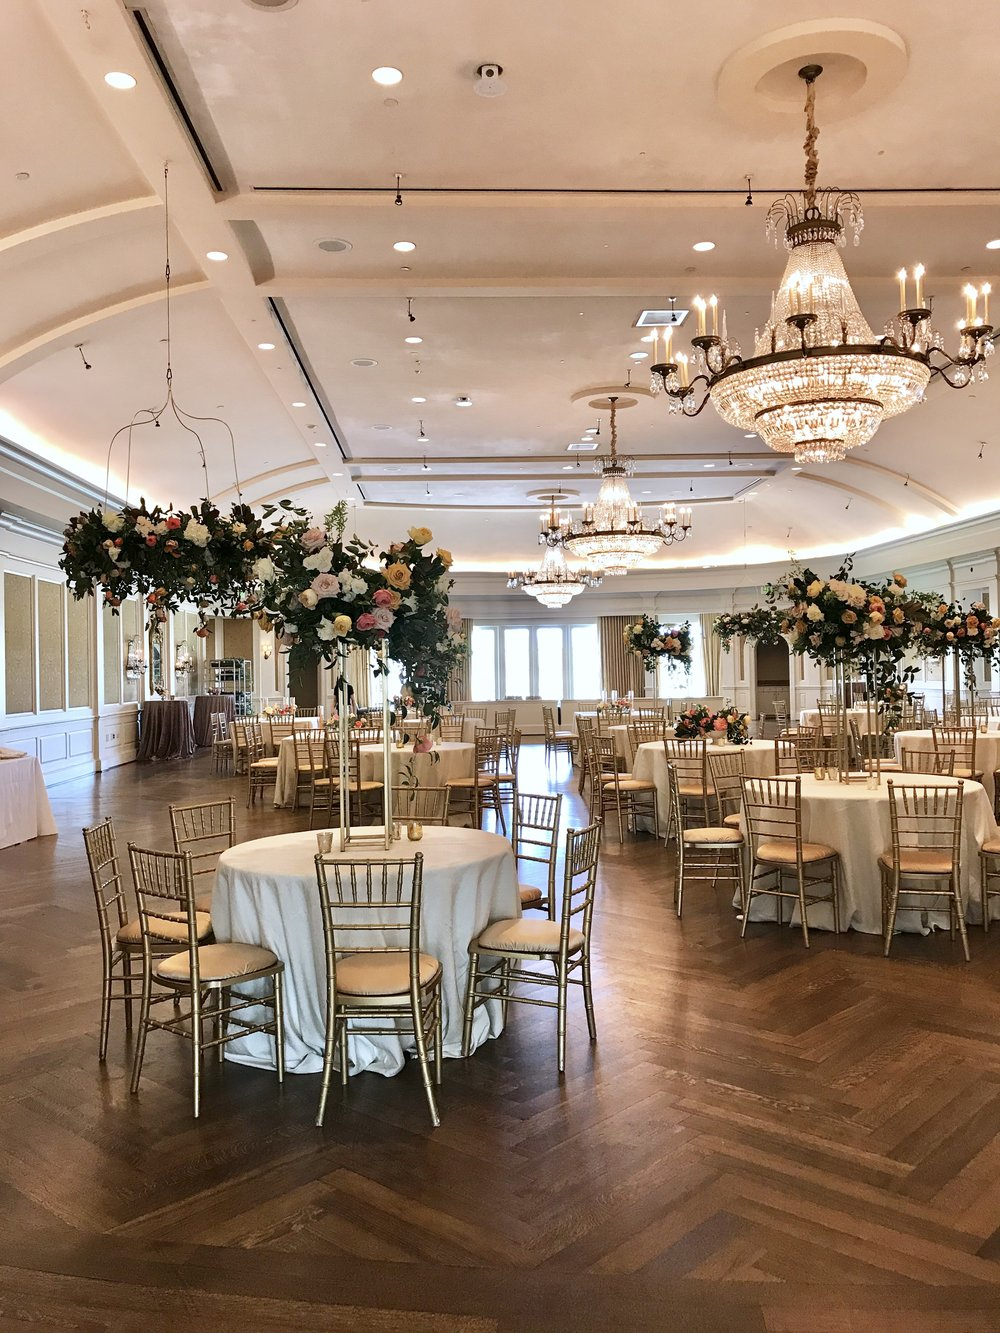 Room shot of Mollie & Alejandro's wedding.  We combined tall arrangements, low garden style compotes, with hanging floral chandeliers.   Keely Thorne Event Planning, River Oaks Country Club, Maxit Flower Design